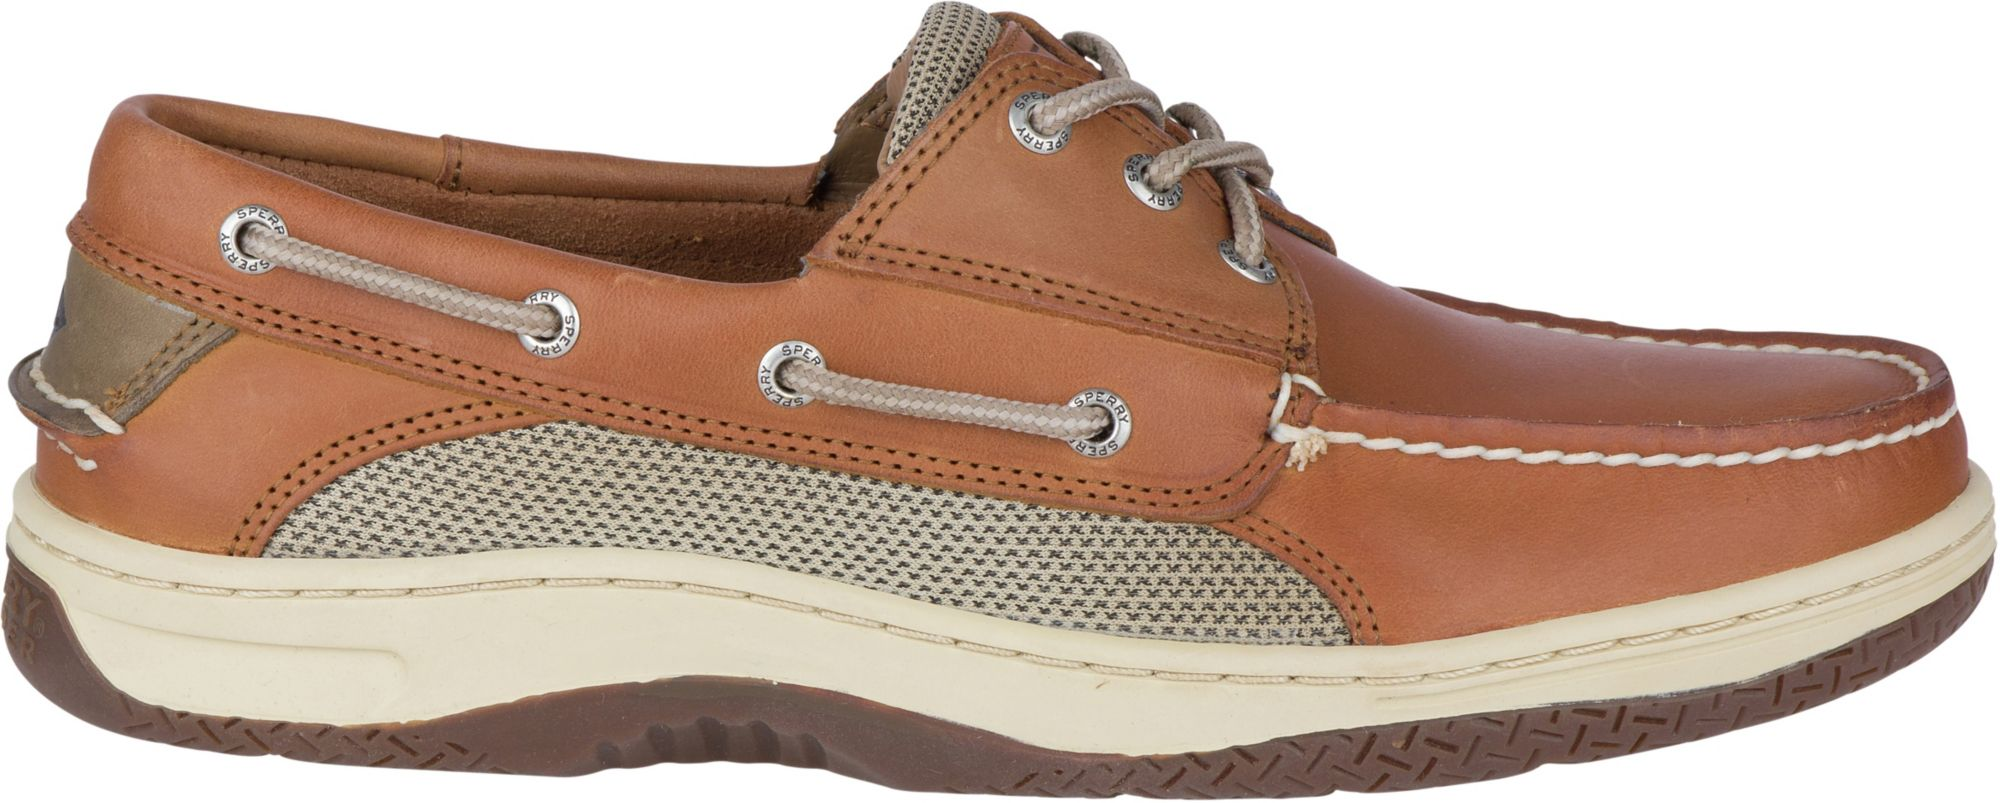 Mens Sperry Boat Shoes Cheap